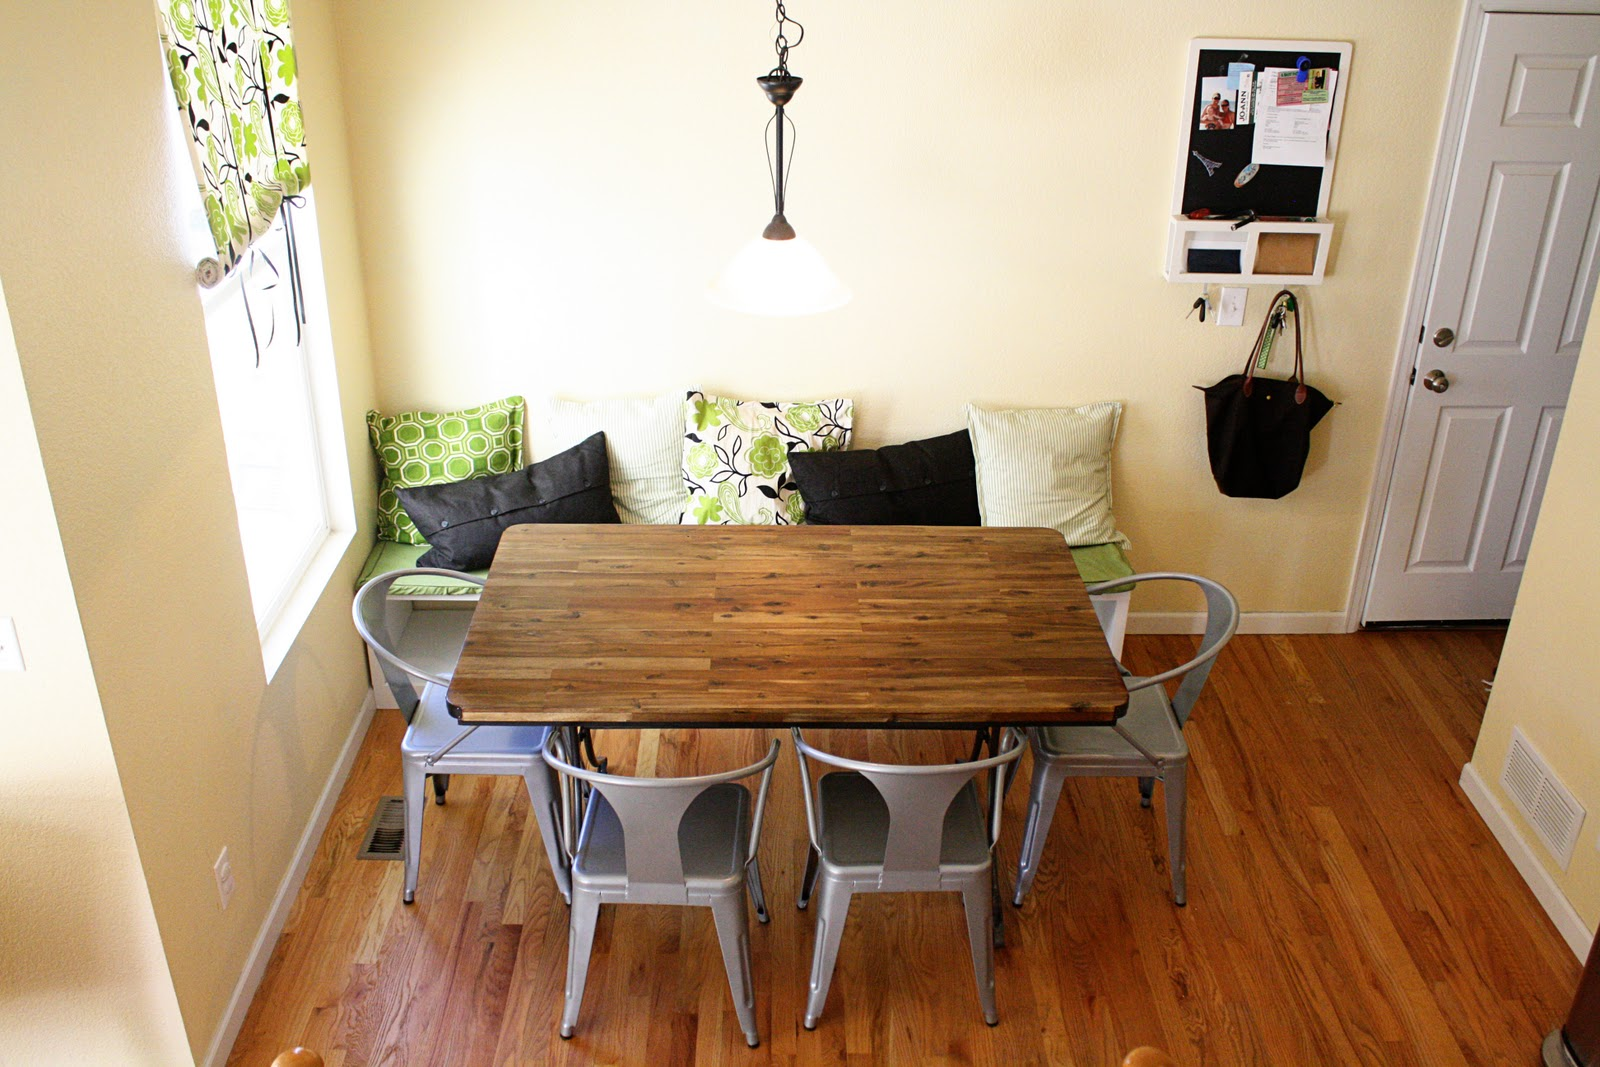 Breakfast nook with banquette seating - Kitchen bench designs ...